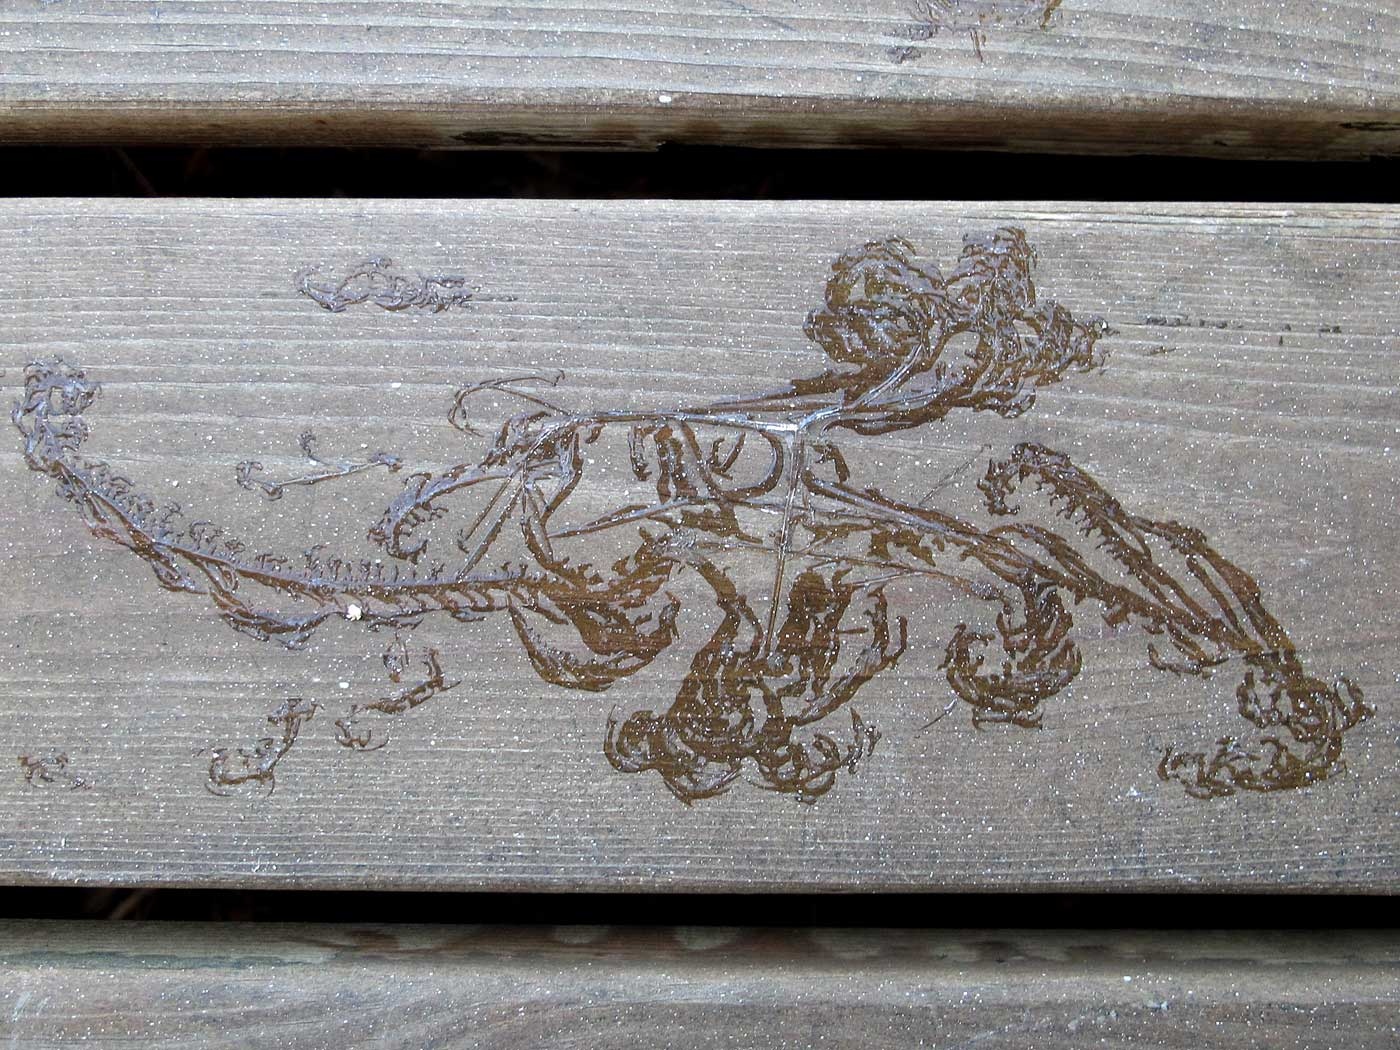 On wood. Frozen plants. - I. (3 March 2013)